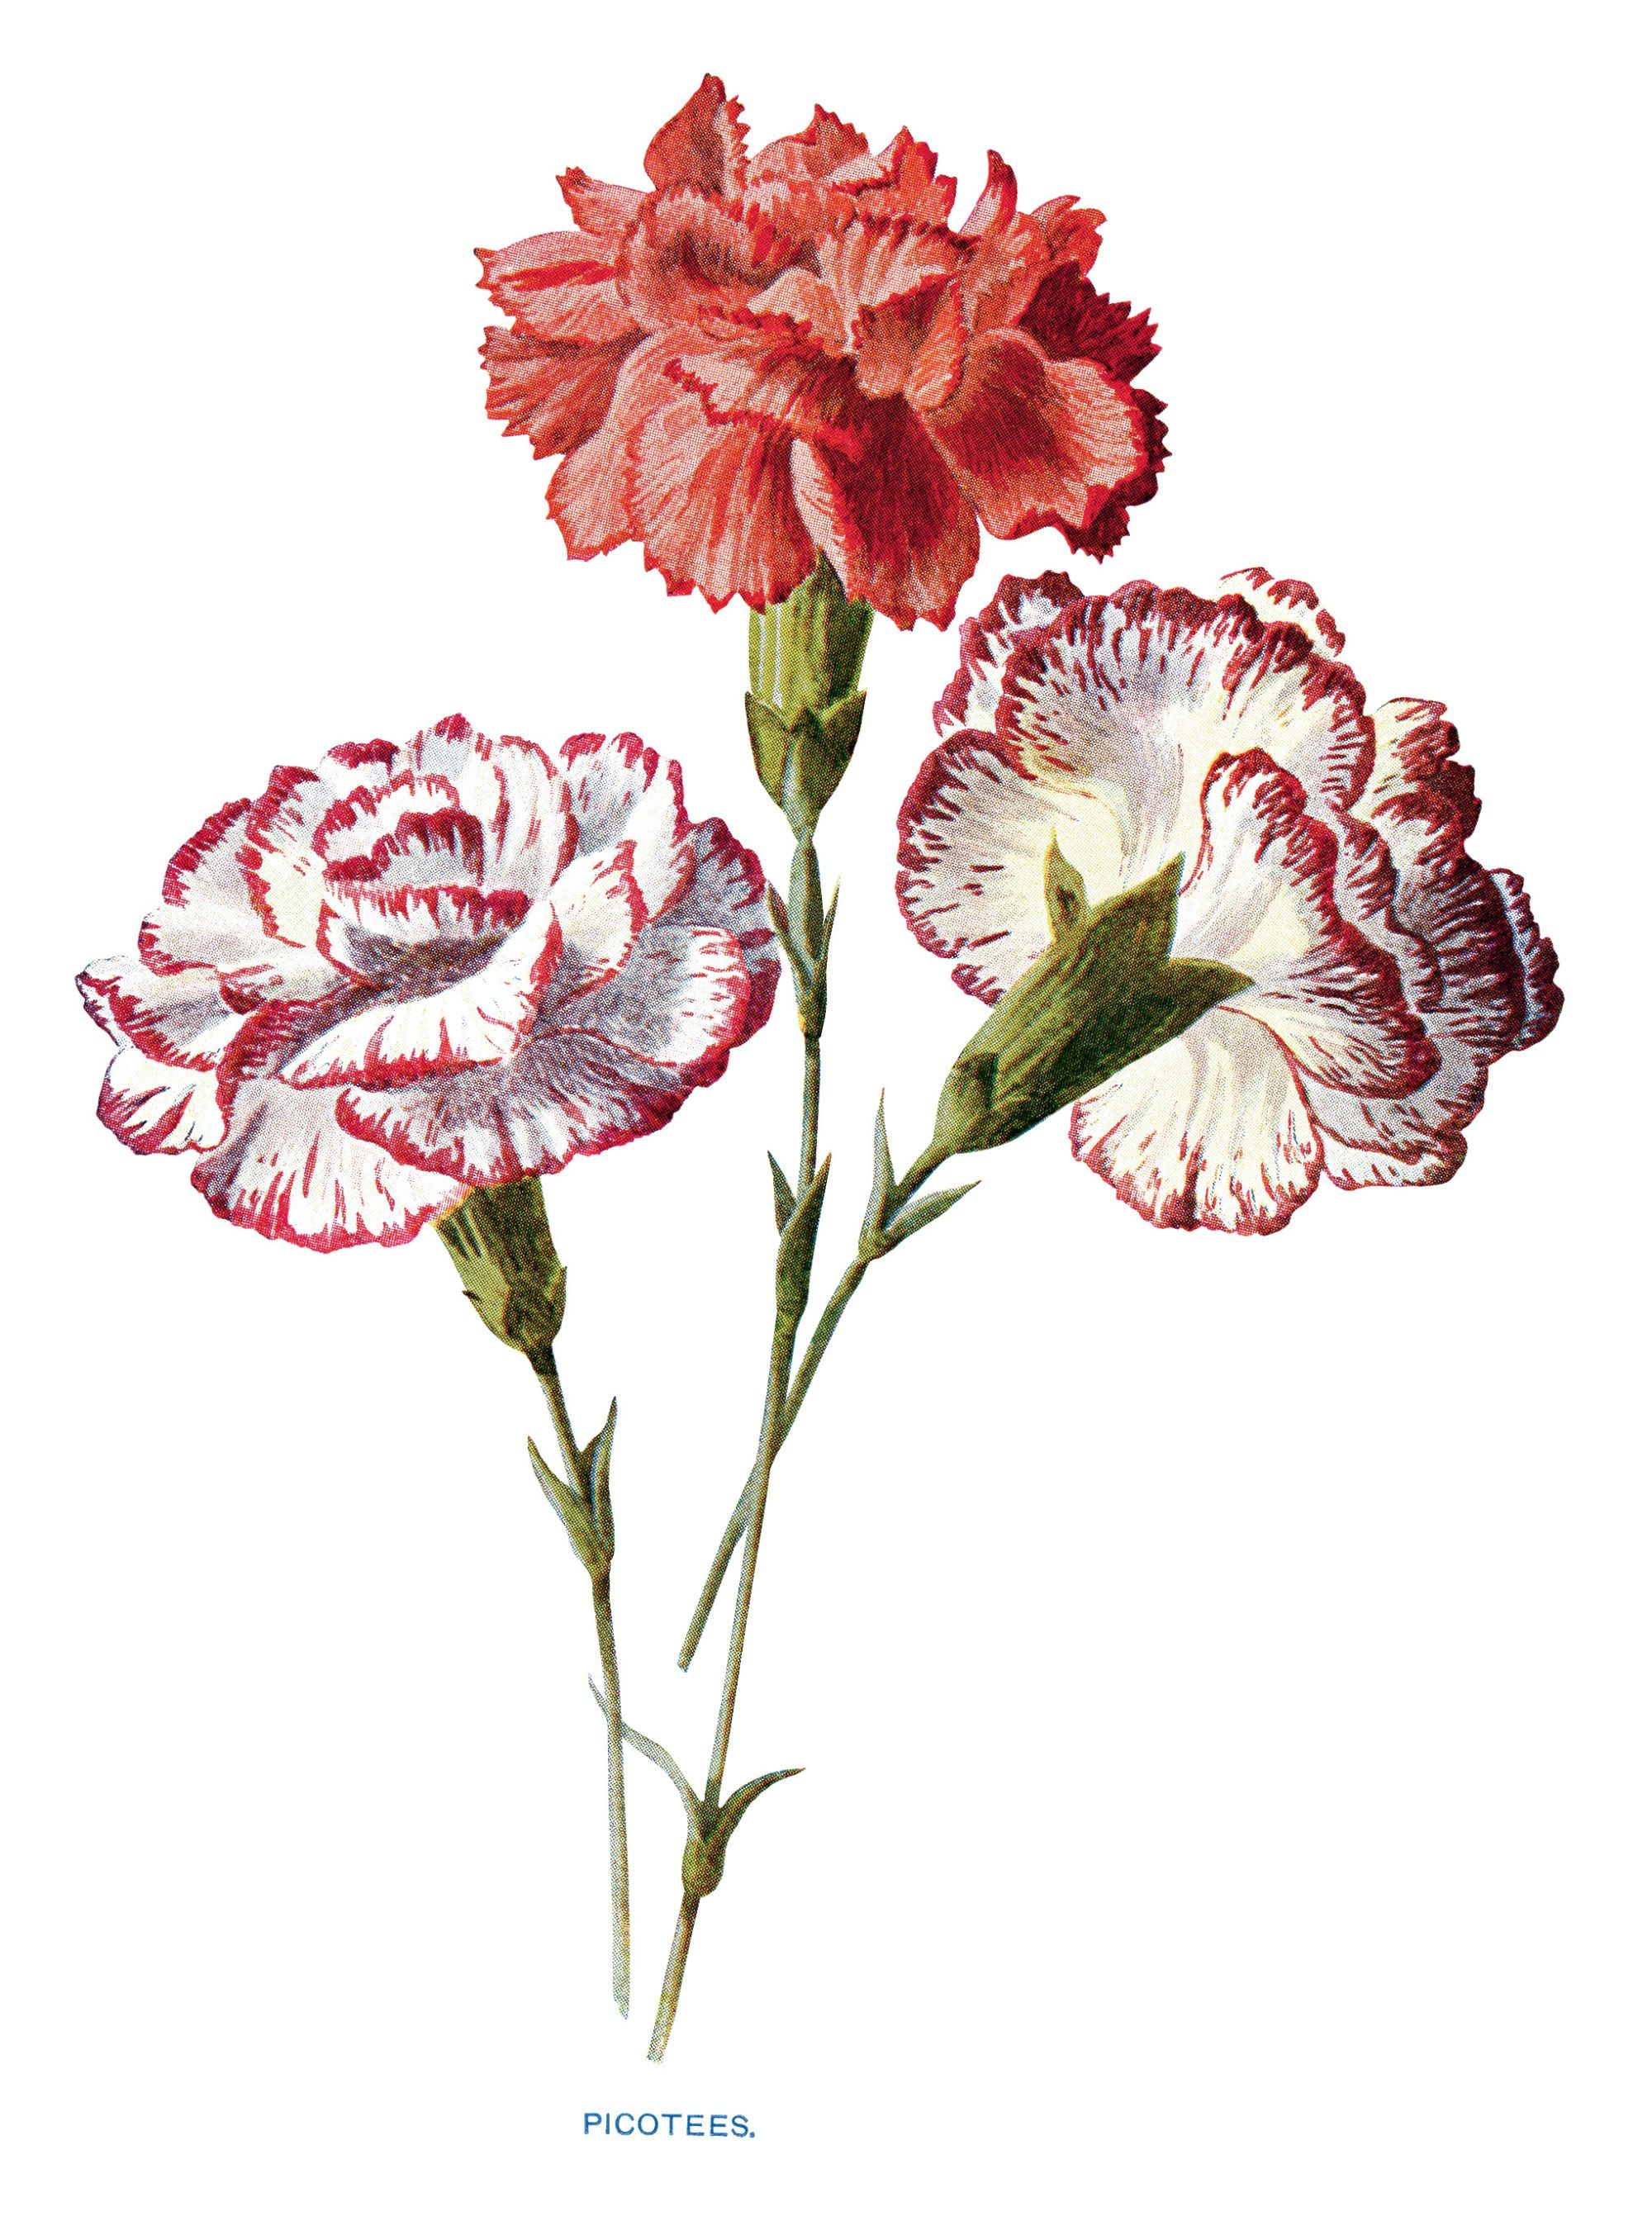 Free Vintage Carnation Clip Art Red White Picotees Flower